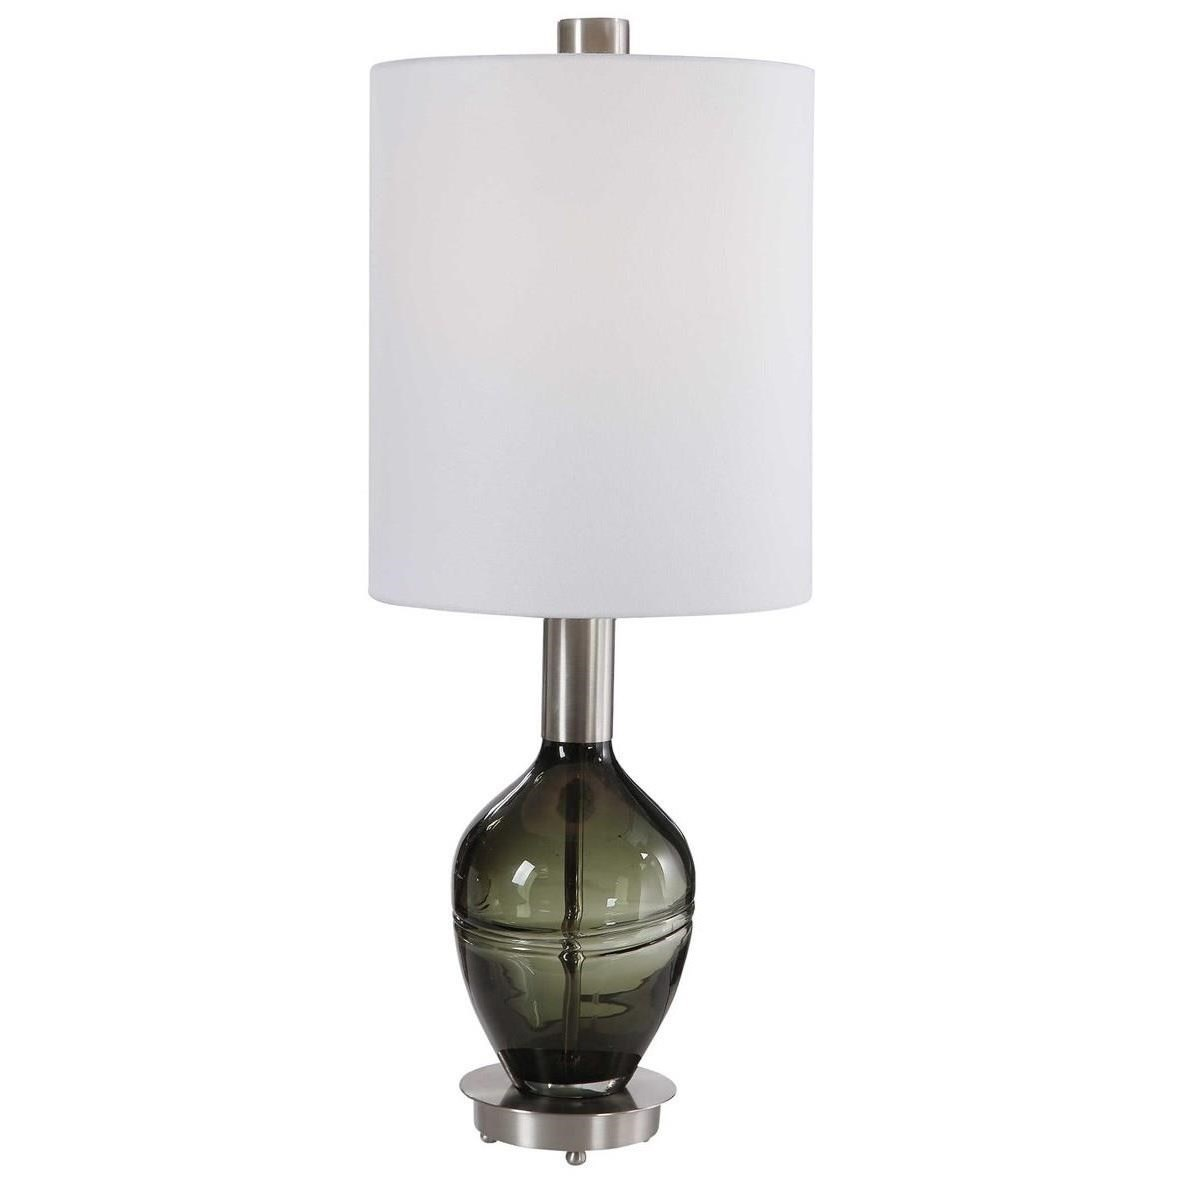 Accent Lamps Aderia Sage Green Accent Lamp by Uttermost at Sprintz Furniture